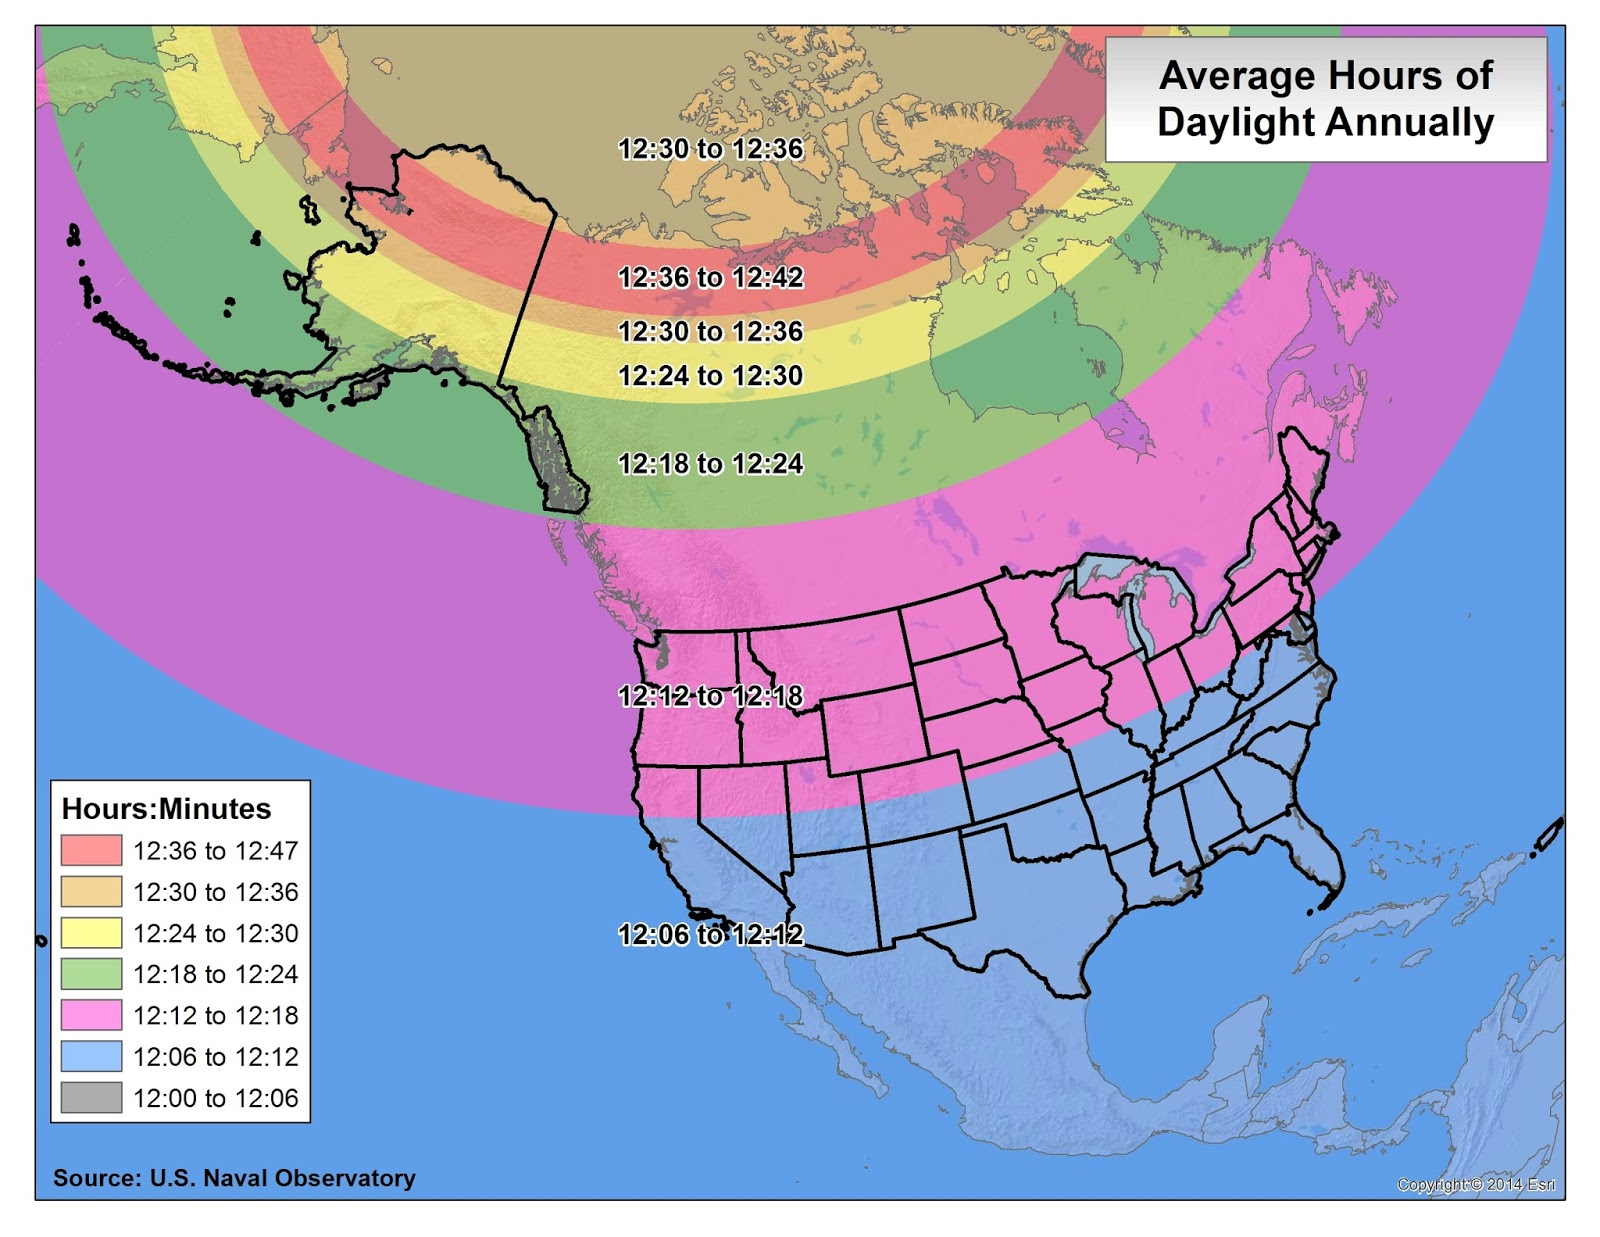 Brian Bs Climate Blog DaylightTwilightAstronomical Maps - Us map annual hours sunshine